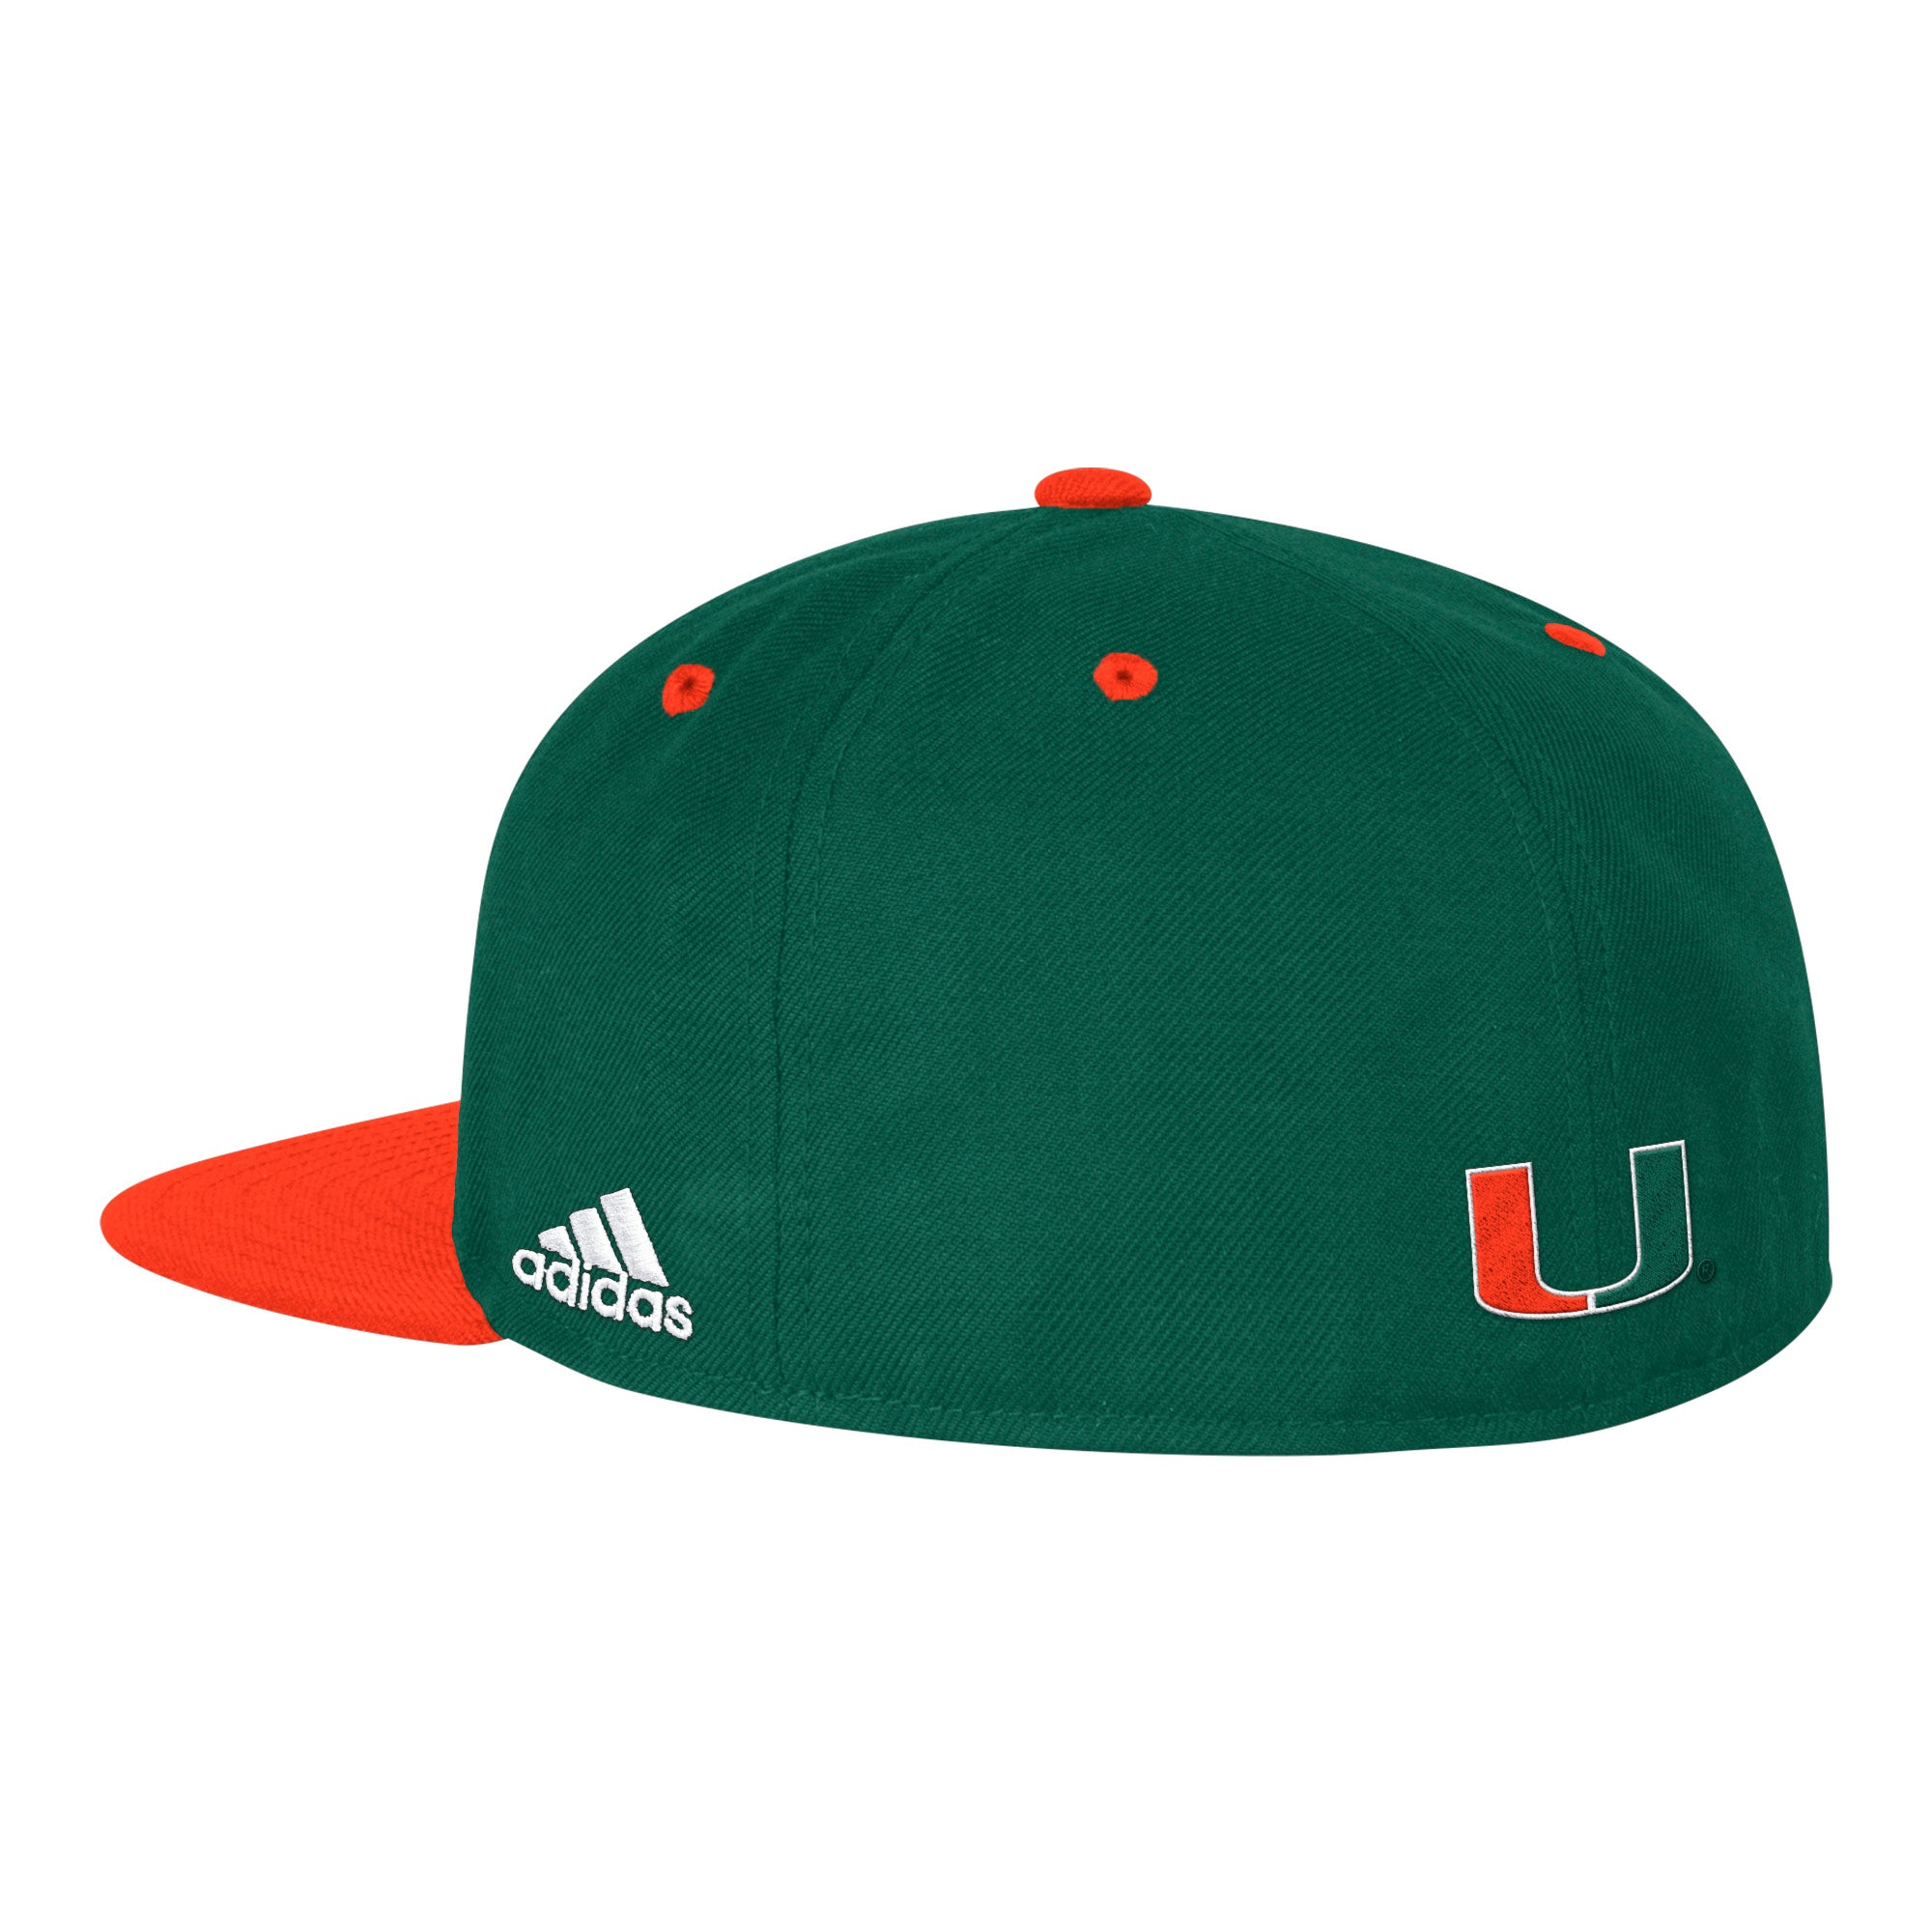 64509e432de75 Miami Hurricanes adidas 2019 On Field Fitted Baseball Hat - Green ...